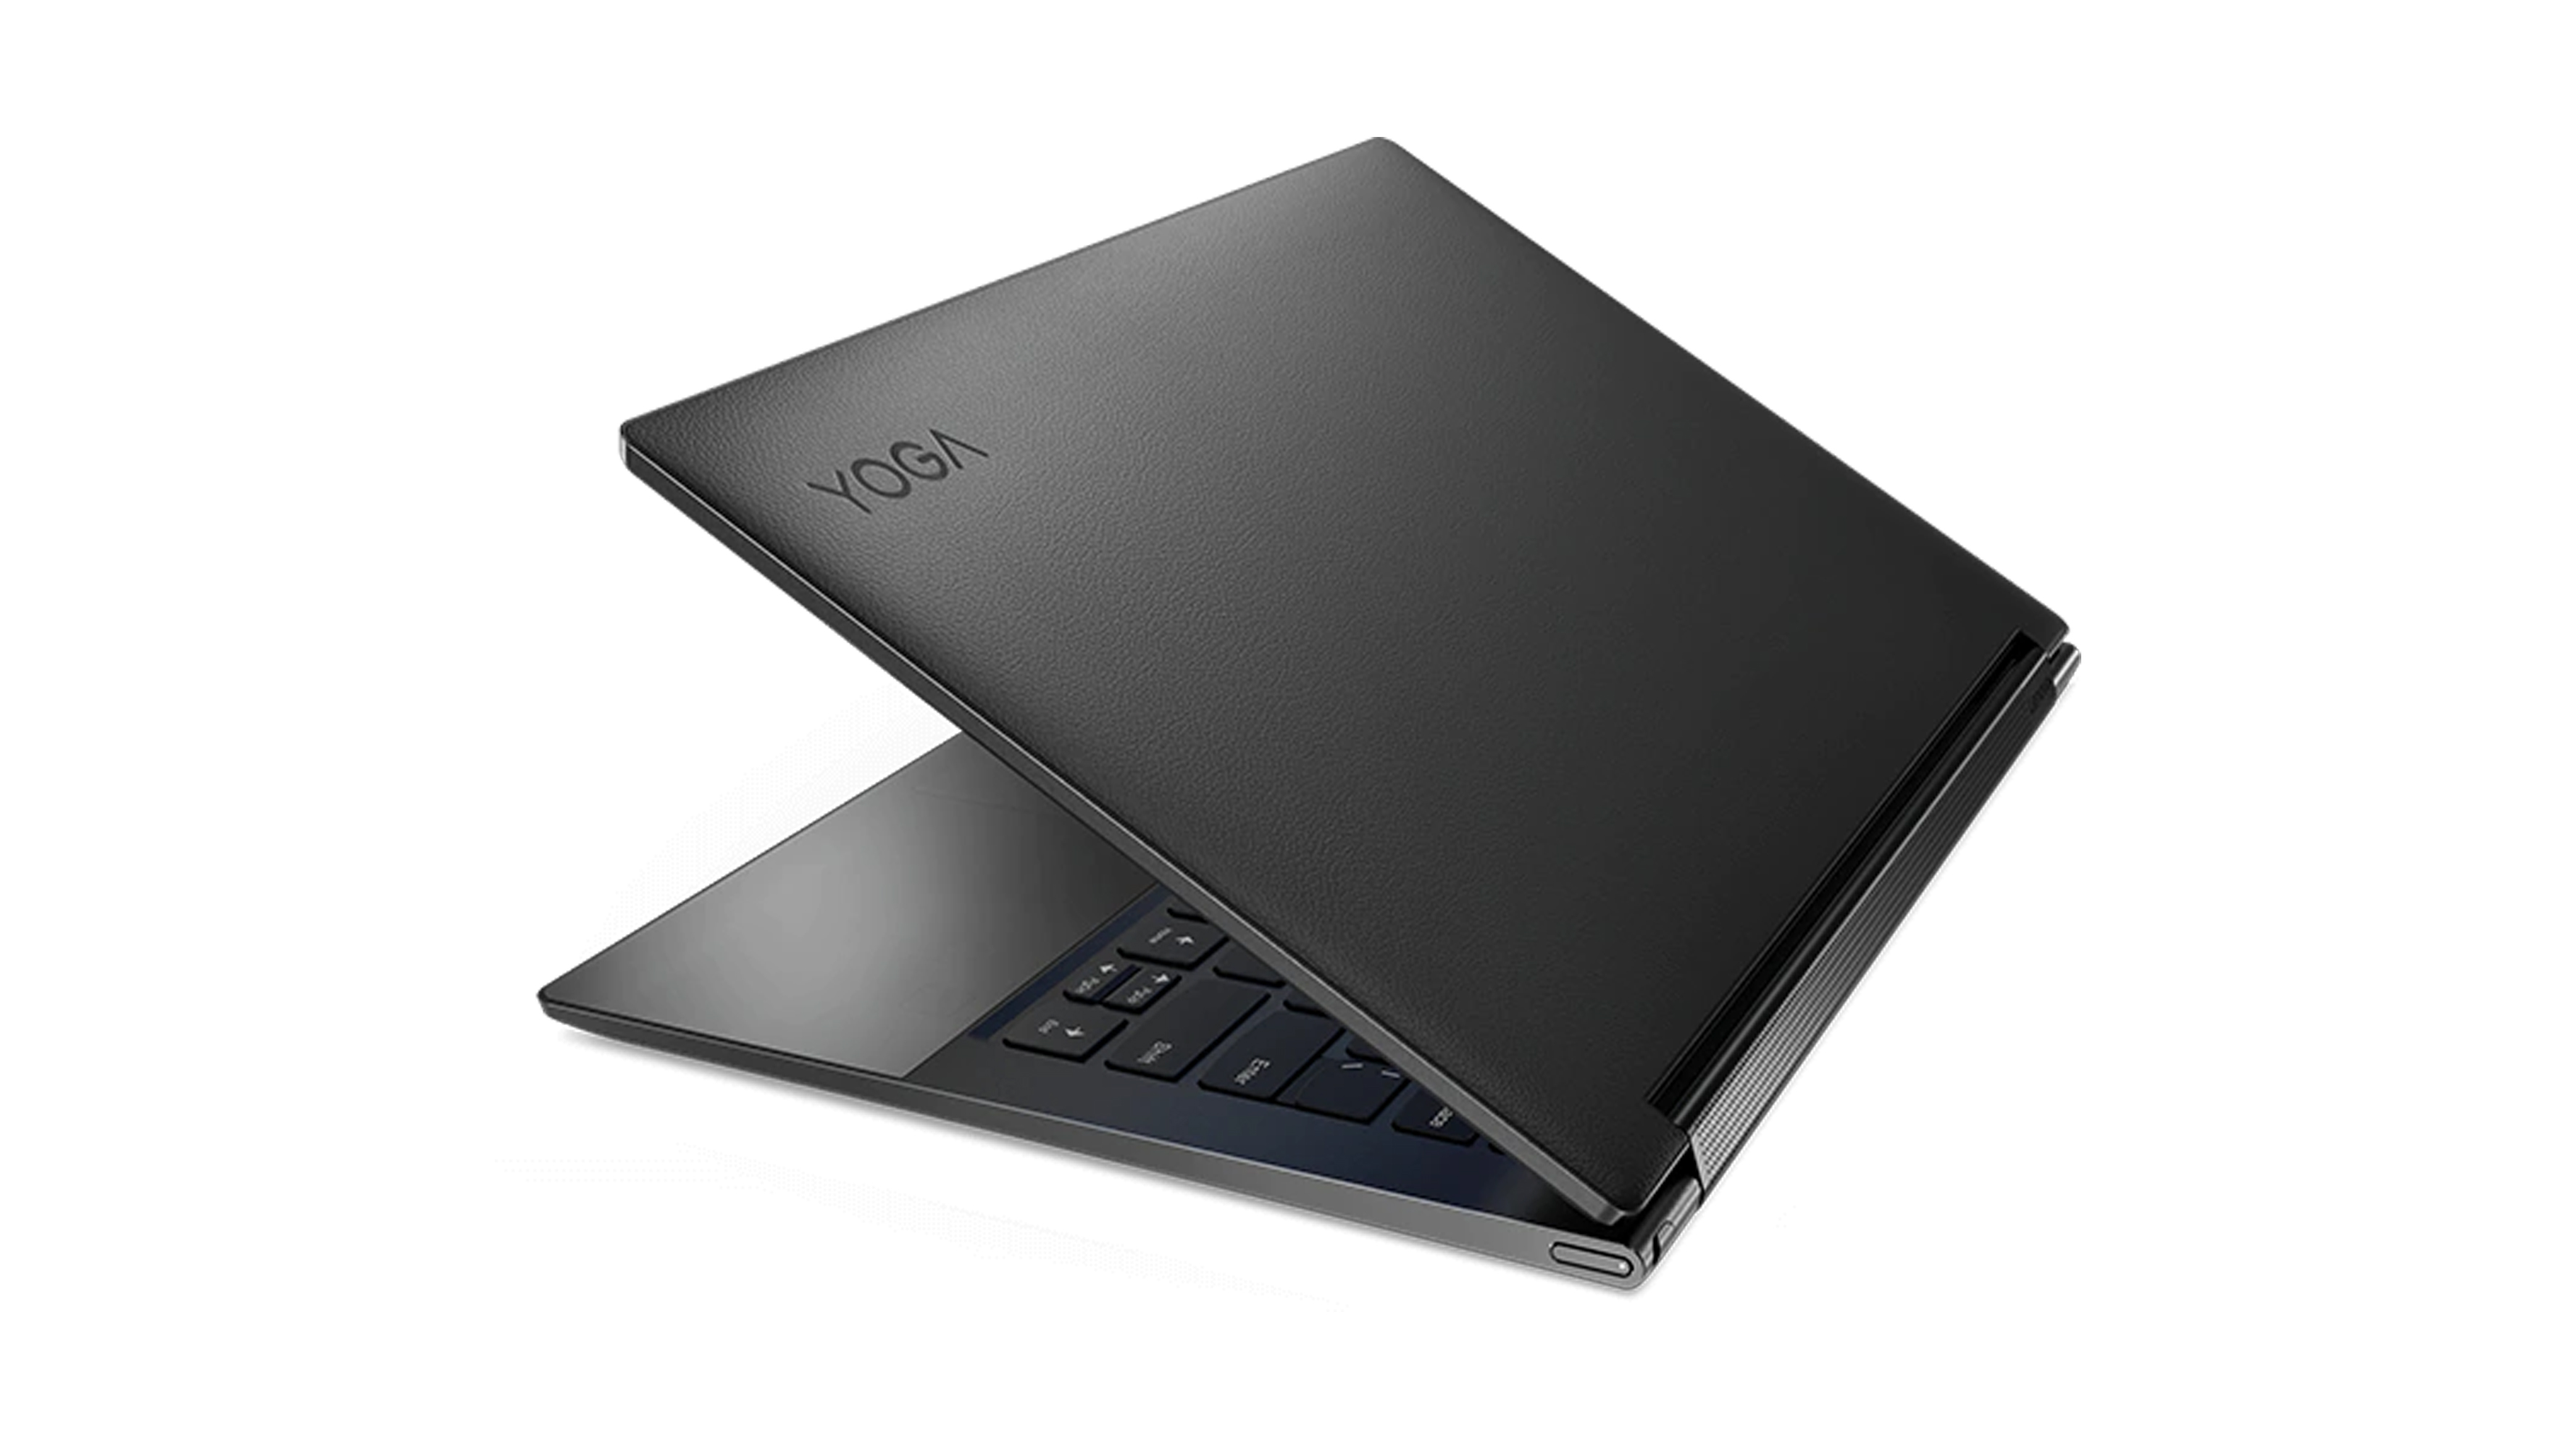 The Lenovo Yoga 9i partially closed against a white background